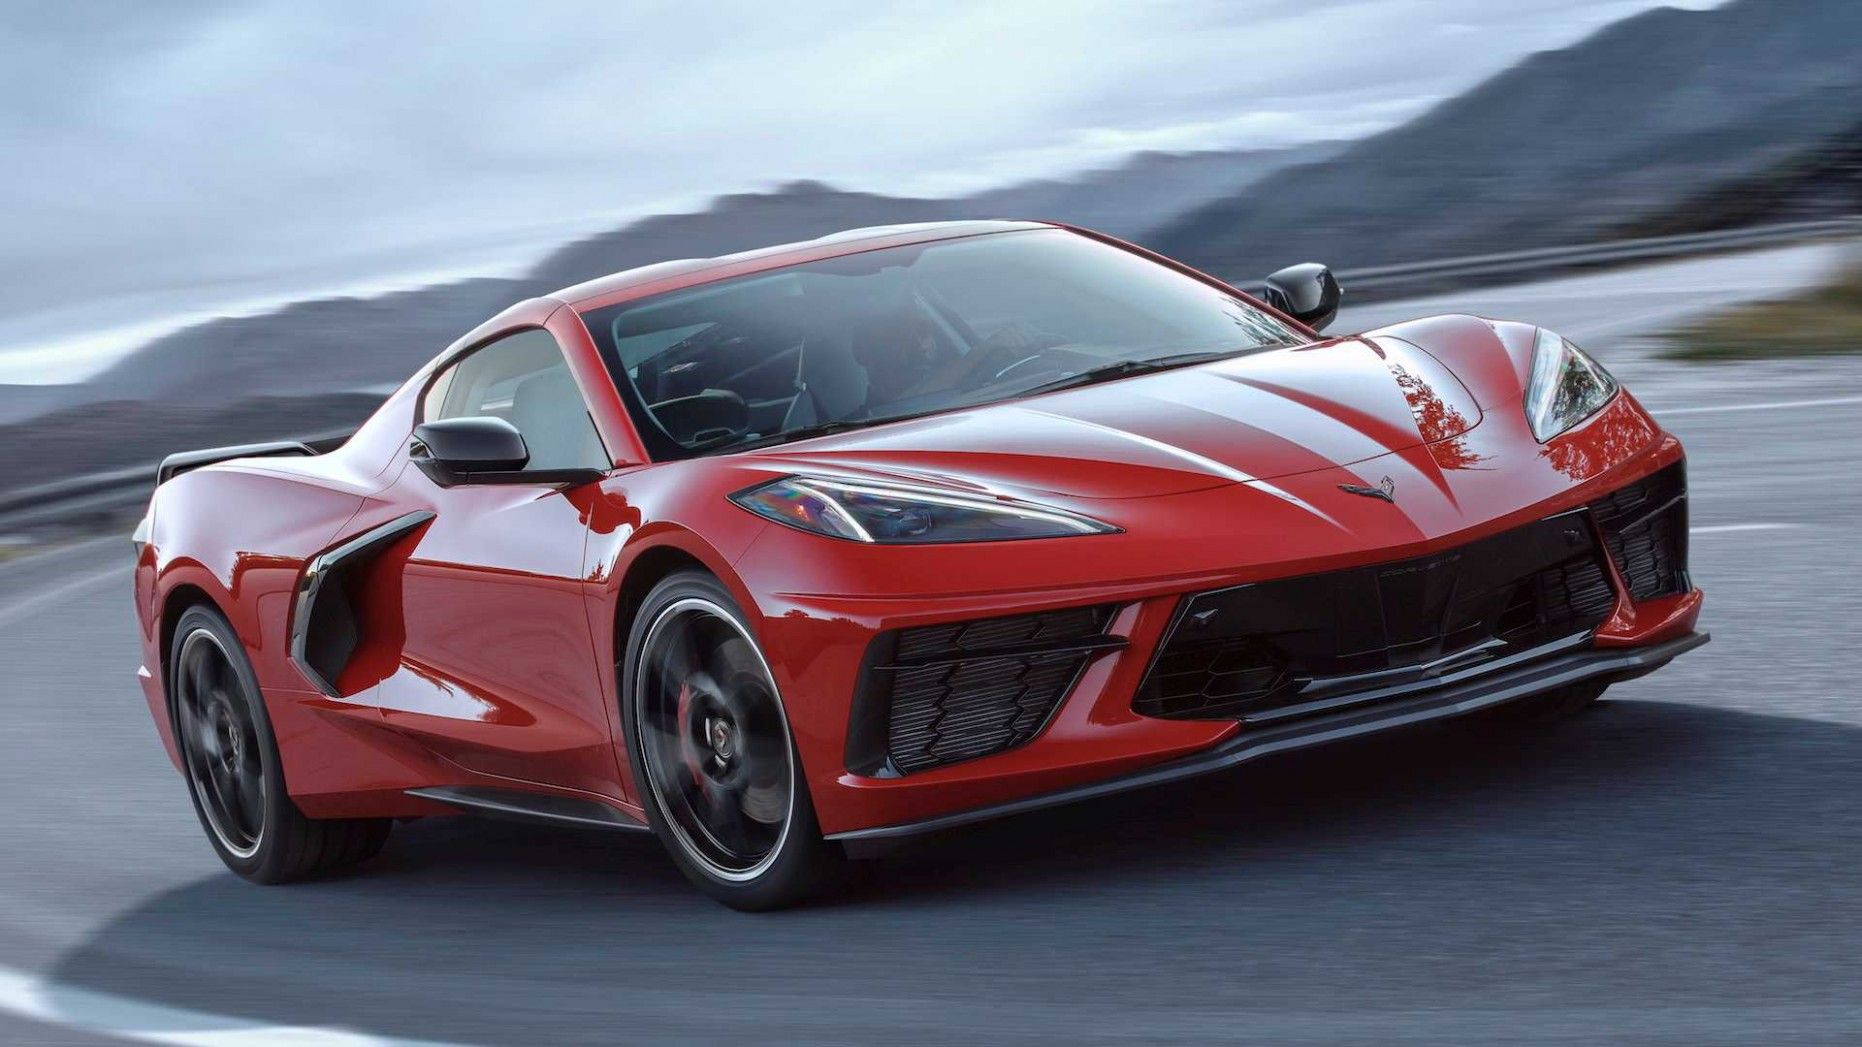 2021 Corvette ZR1 New in 2020 | Chevrolet corvette ...